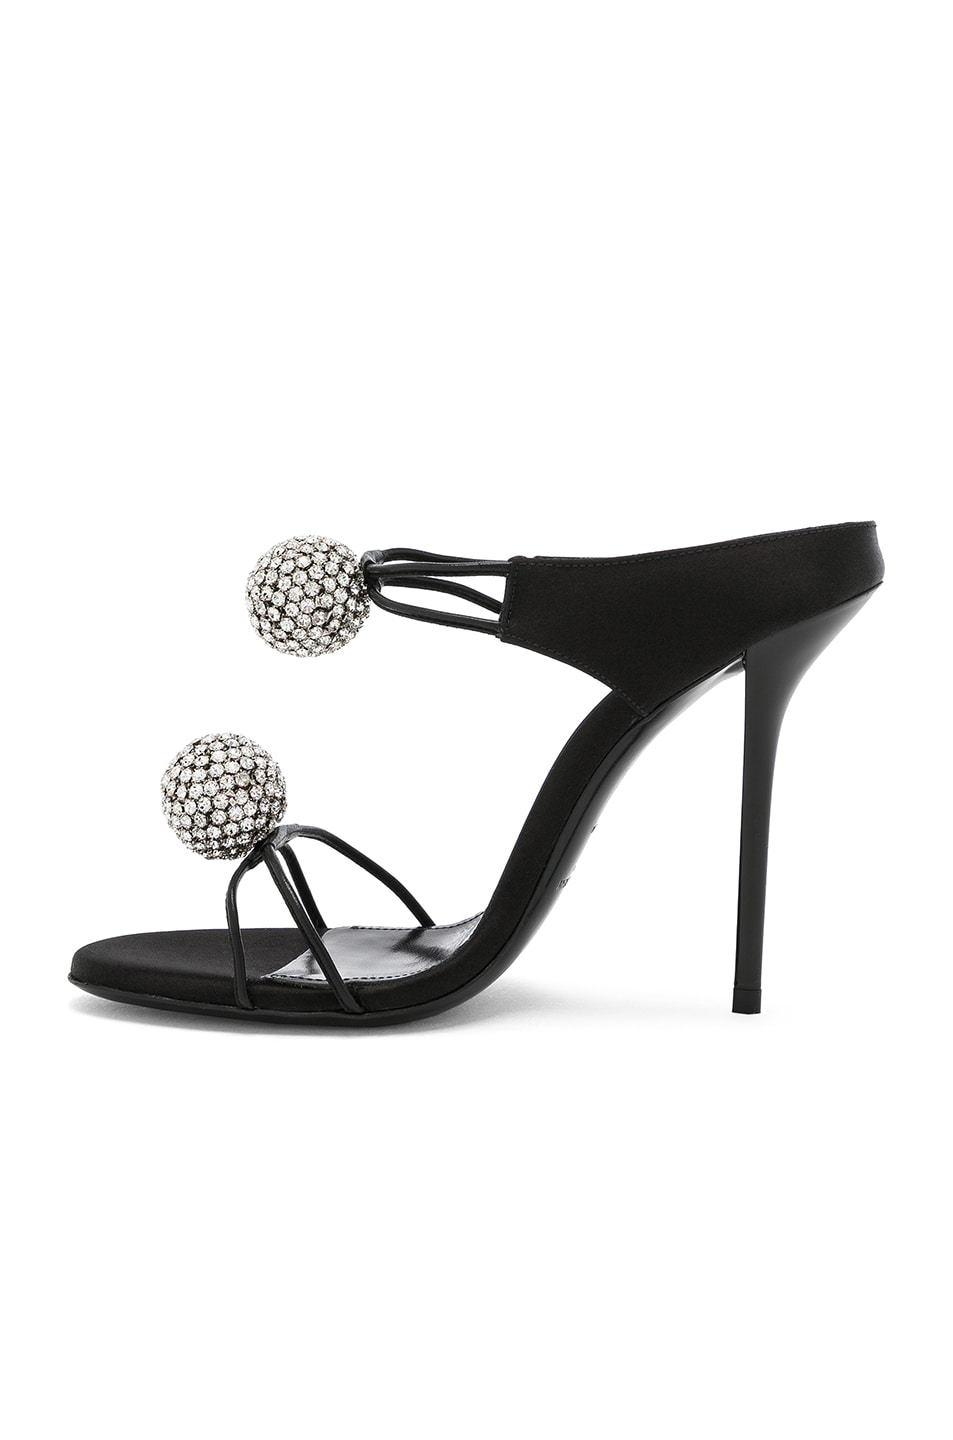 Image 5 of Saint Laurent Satin Pom Pom Strap Pierre Sandals in Black